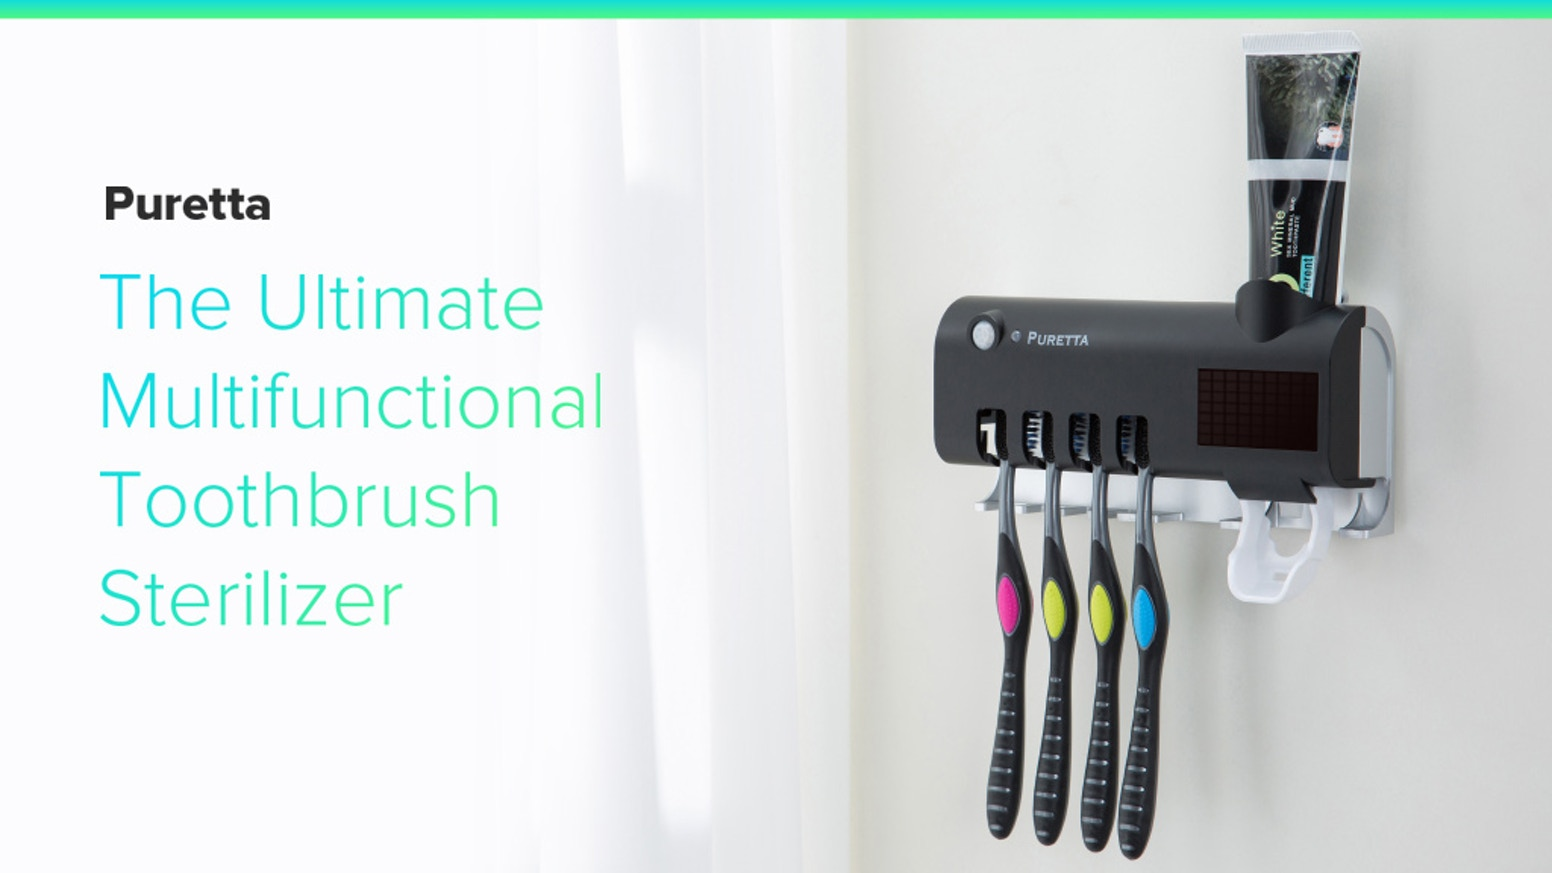 Advanced Infrared, Solar Powered Multi-Functional Sterilizing Toothbrush Station. Kills 99.9% of Bacteria and Germs.